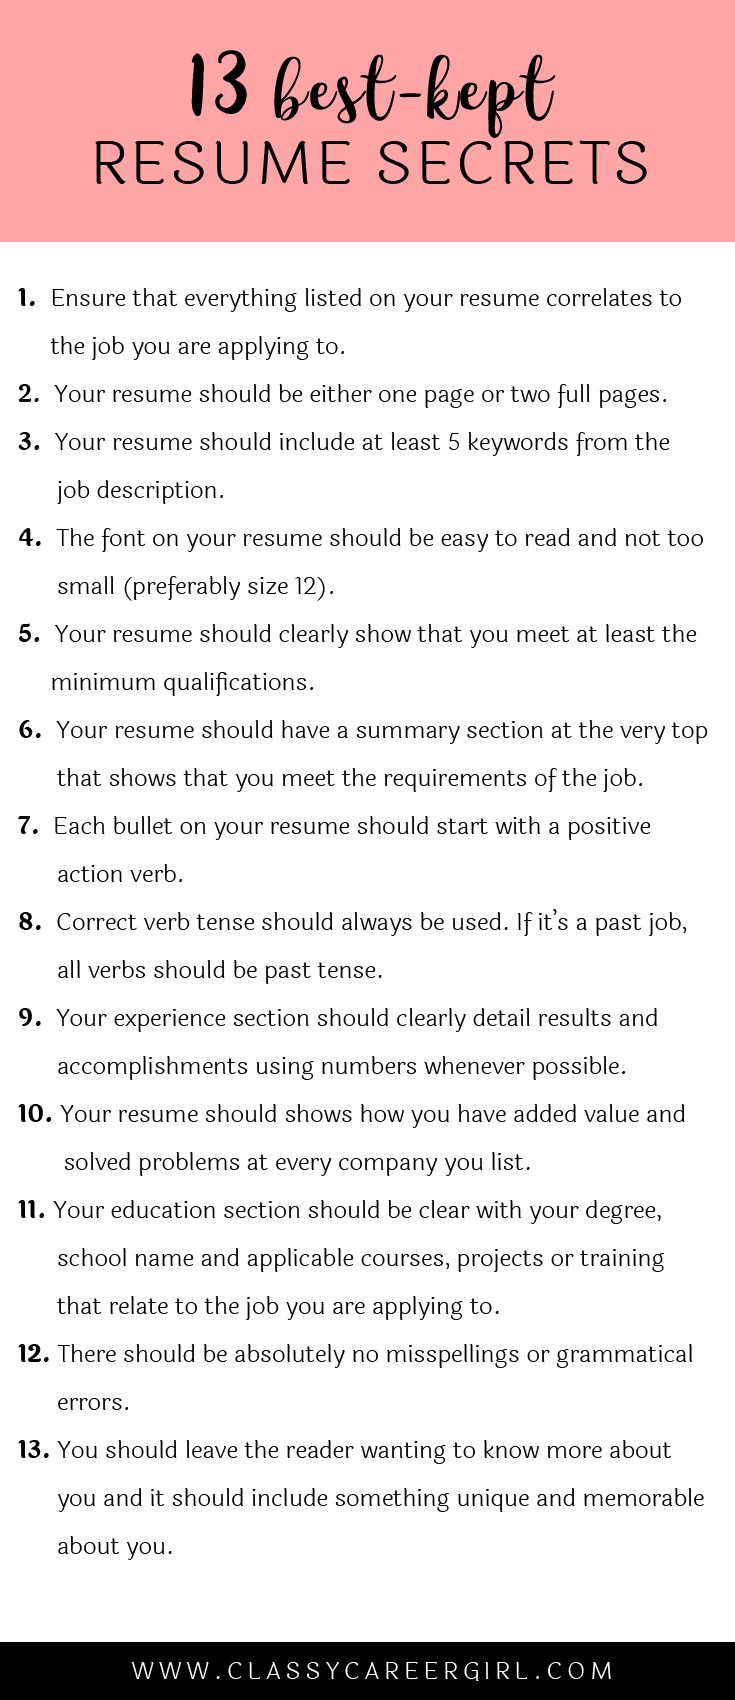 Opposenewapstandardsus  Pretty  Ideas About Resume On Pinterest  Cv Format Resume Cv And  With Excellent Some Hiring Managers Will Toss Your Resume Out If You Dont Know These  With Cool The Purpose Of A Resume Also Resume For New Graduate In Addition Interesting Resume Templates And Music Resume For College As Well As What Is A Federal Resume Additionally Resume Formatting Examples From Pinterestcom With Opposenewapstandardsus  Excellent  Ideas About Resume On Pinterest  Cv Format Resume Cv And  With Cool Some Hiring Managers Will Toss Your Resume Out If You Dont Know These  And Pretty The Purpose Of A Resume Also Resume For New Graduate In Addition Interesting Resume Templates From Pinterestcom